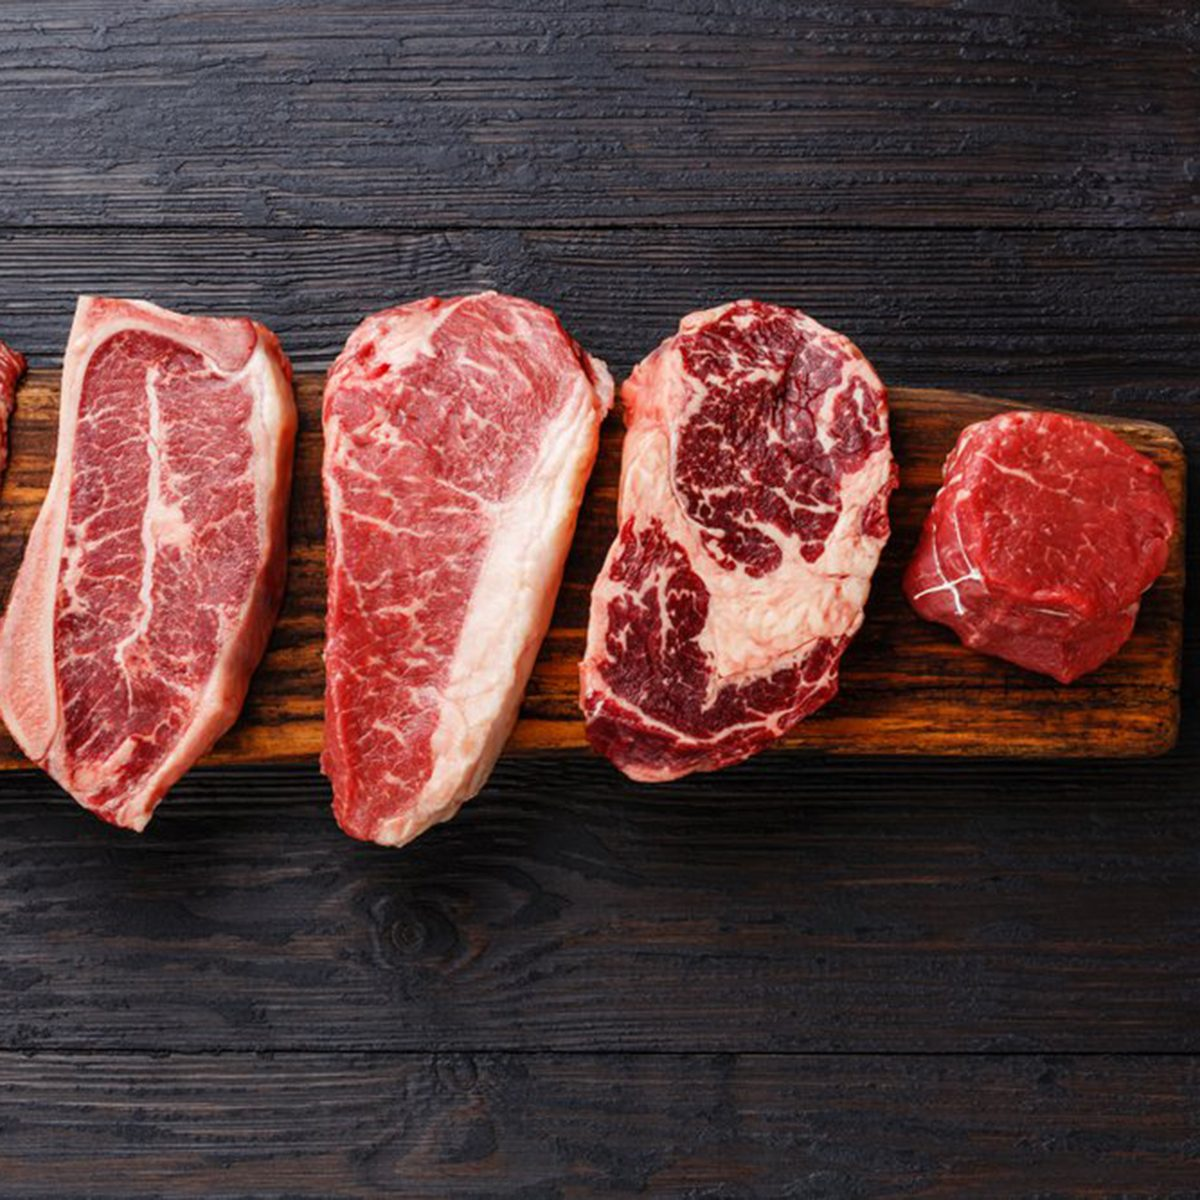 Raw red meat steaks